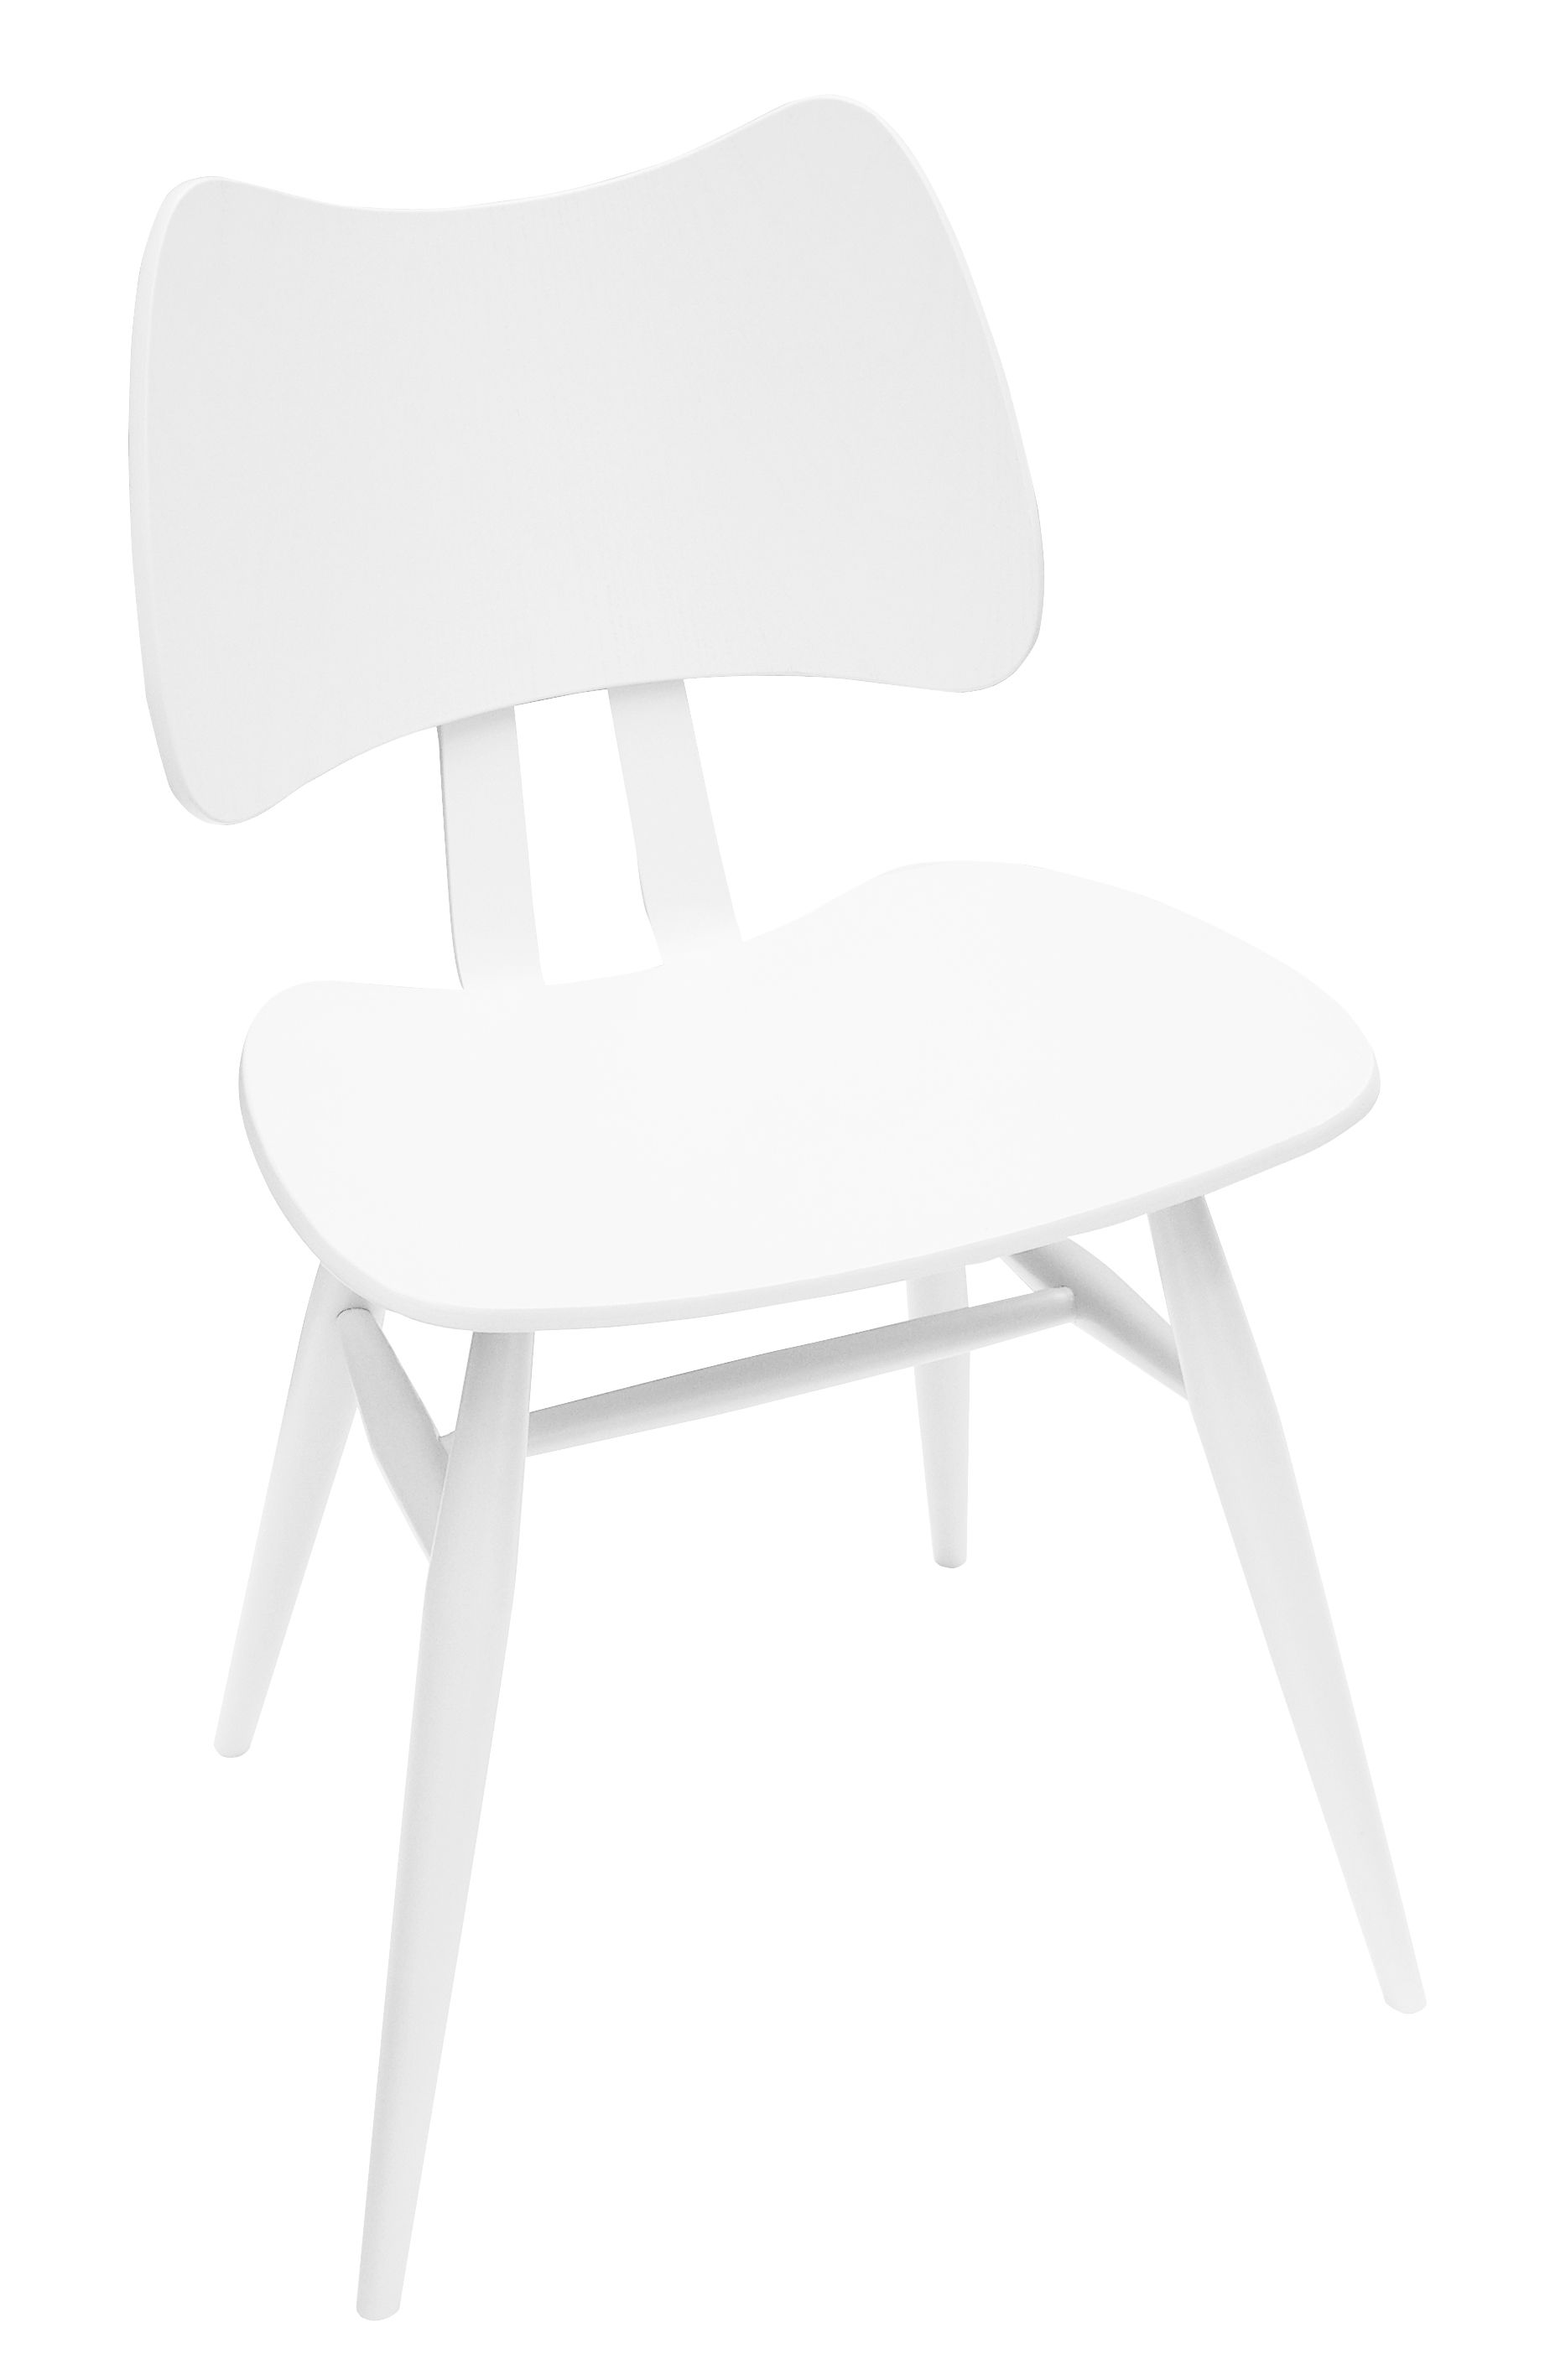 Furniture - Chairs - Butterfly Chair - Wood - 1958 Reissue by Ercol - White - Contreplaqué de orme, Natural beechwood